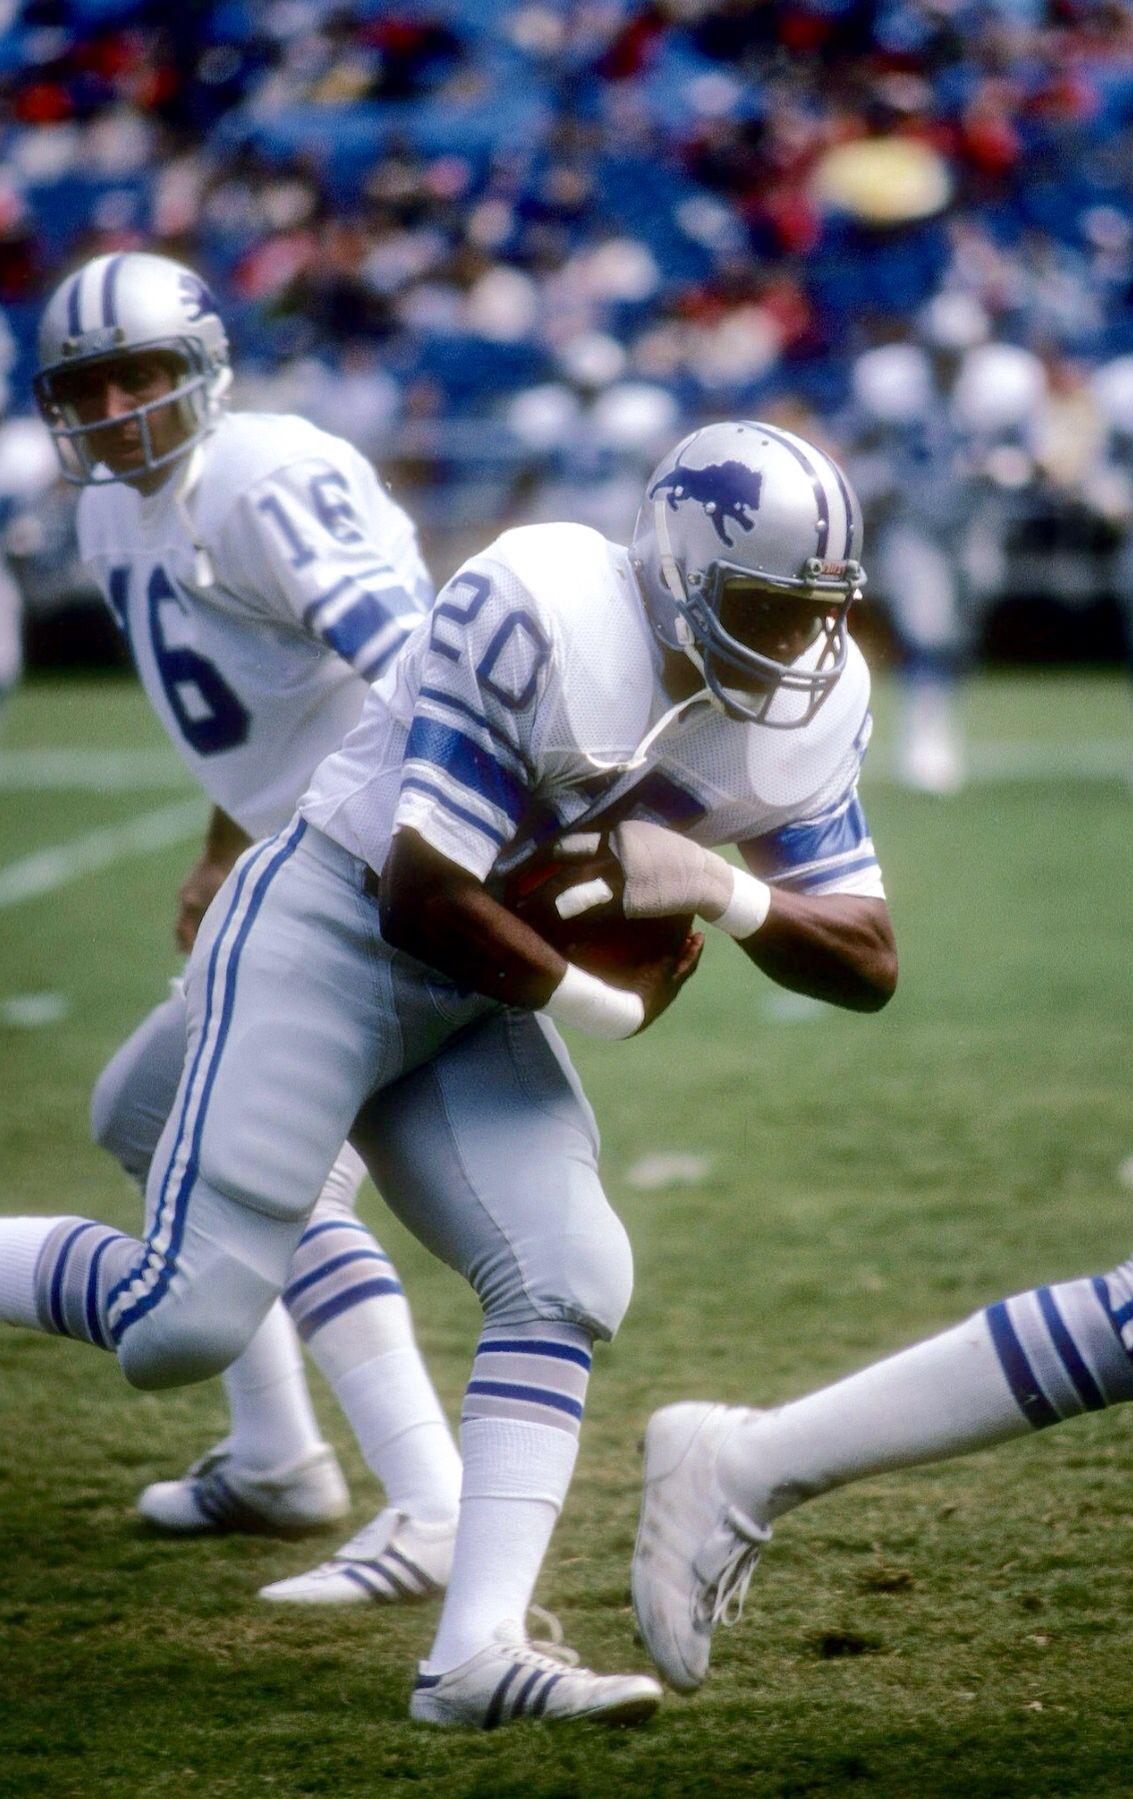 Billy Sims | Nfl detroit lions, Lions football, Nfl ...